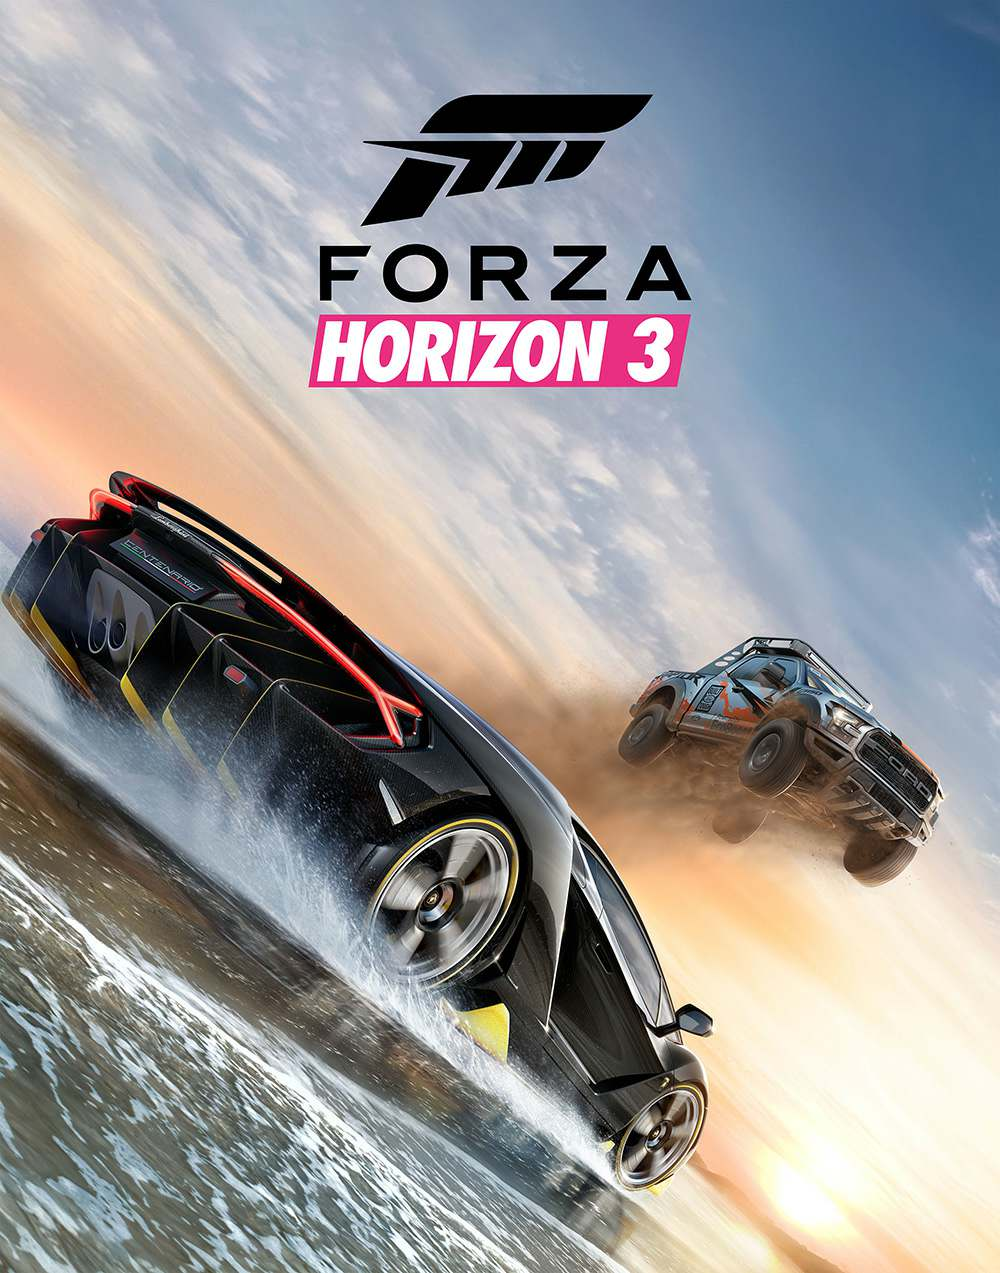 Forza-Horizon-3-keygen-crack(PC)